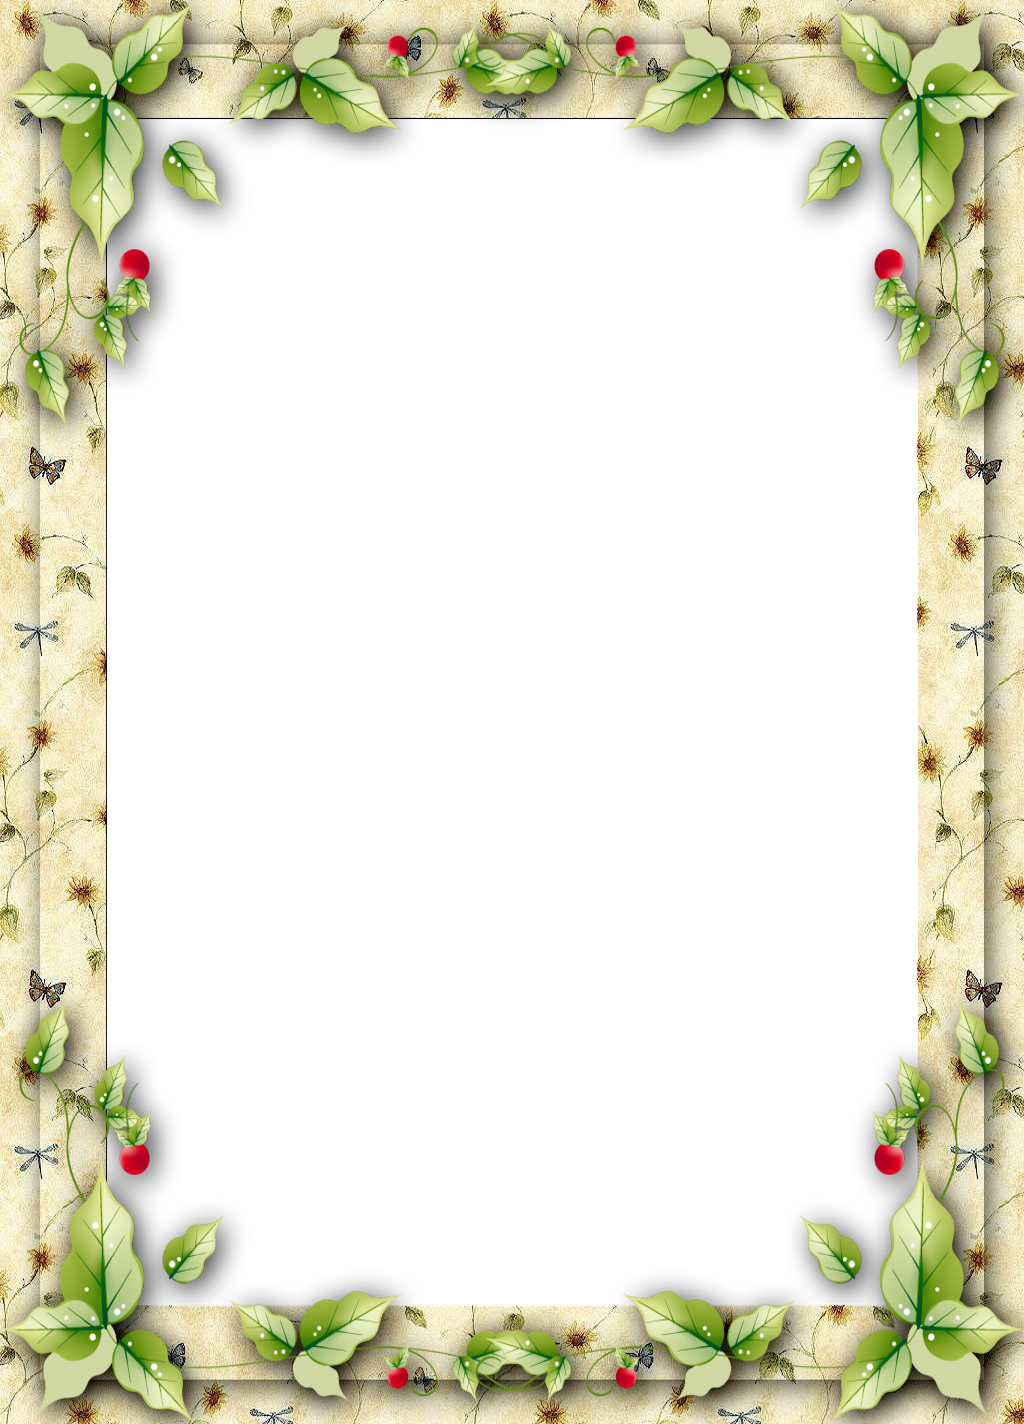 Religious borders and frames clipart images gallery for free.